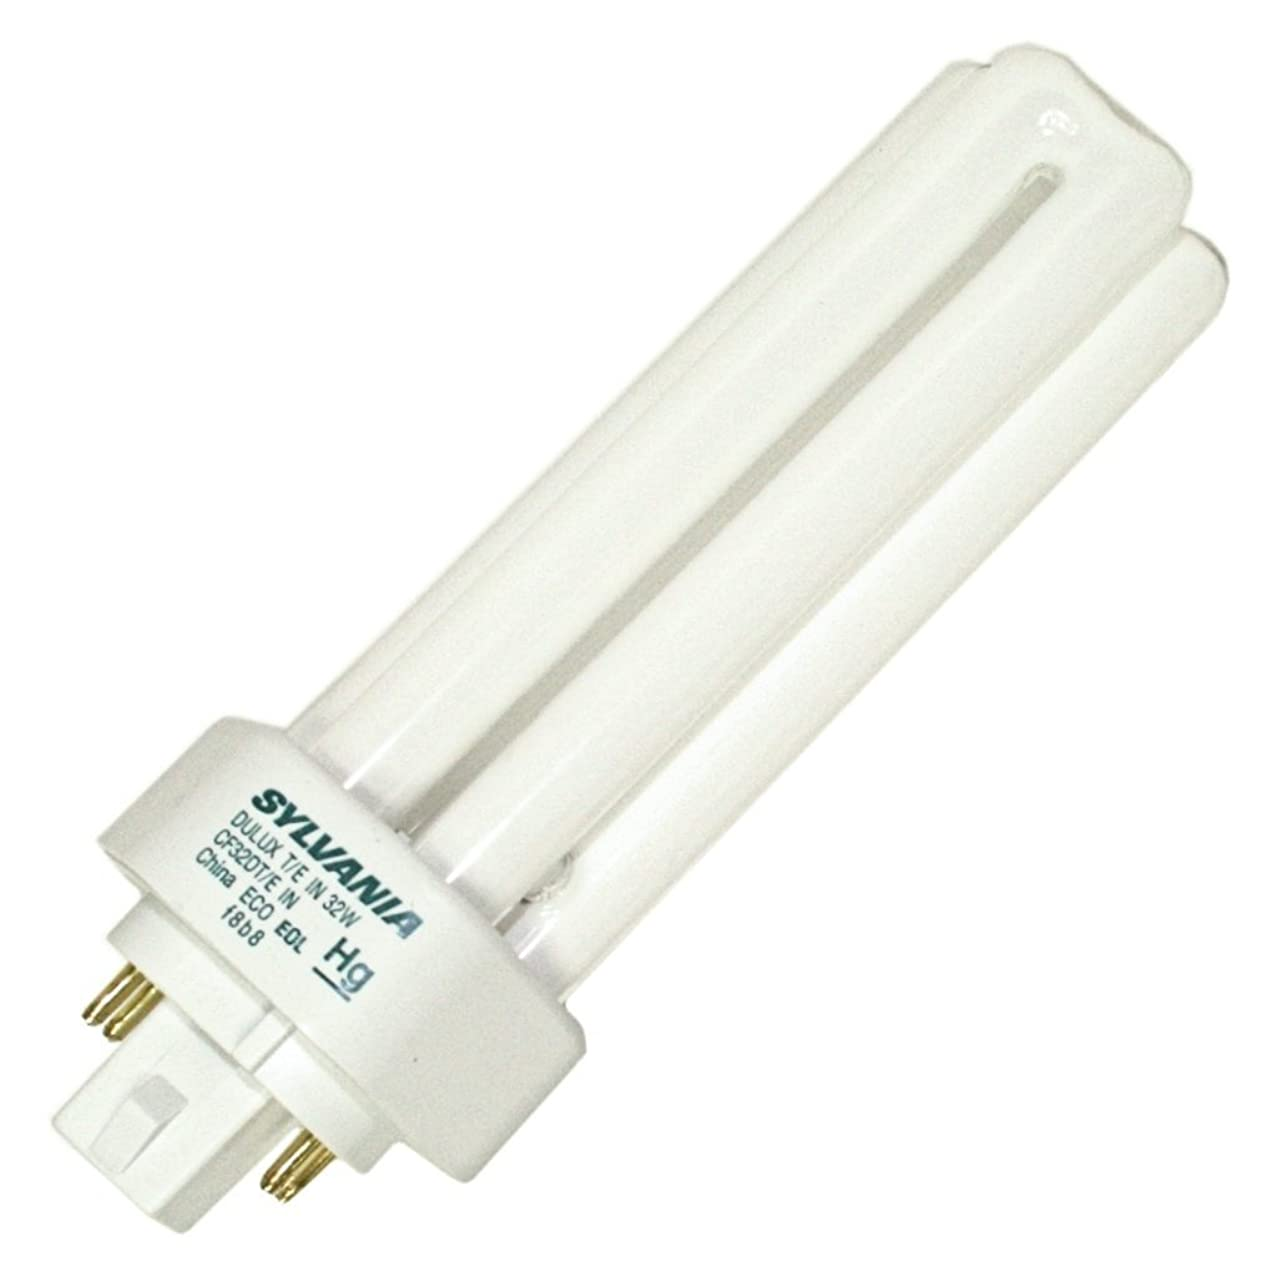 (10 Pack) Sylvania 20884 CF32DT/E/IN/830/ECO 32-Watt 3000K 4-Pin Triple Tube Compact Fluorescent Lamp